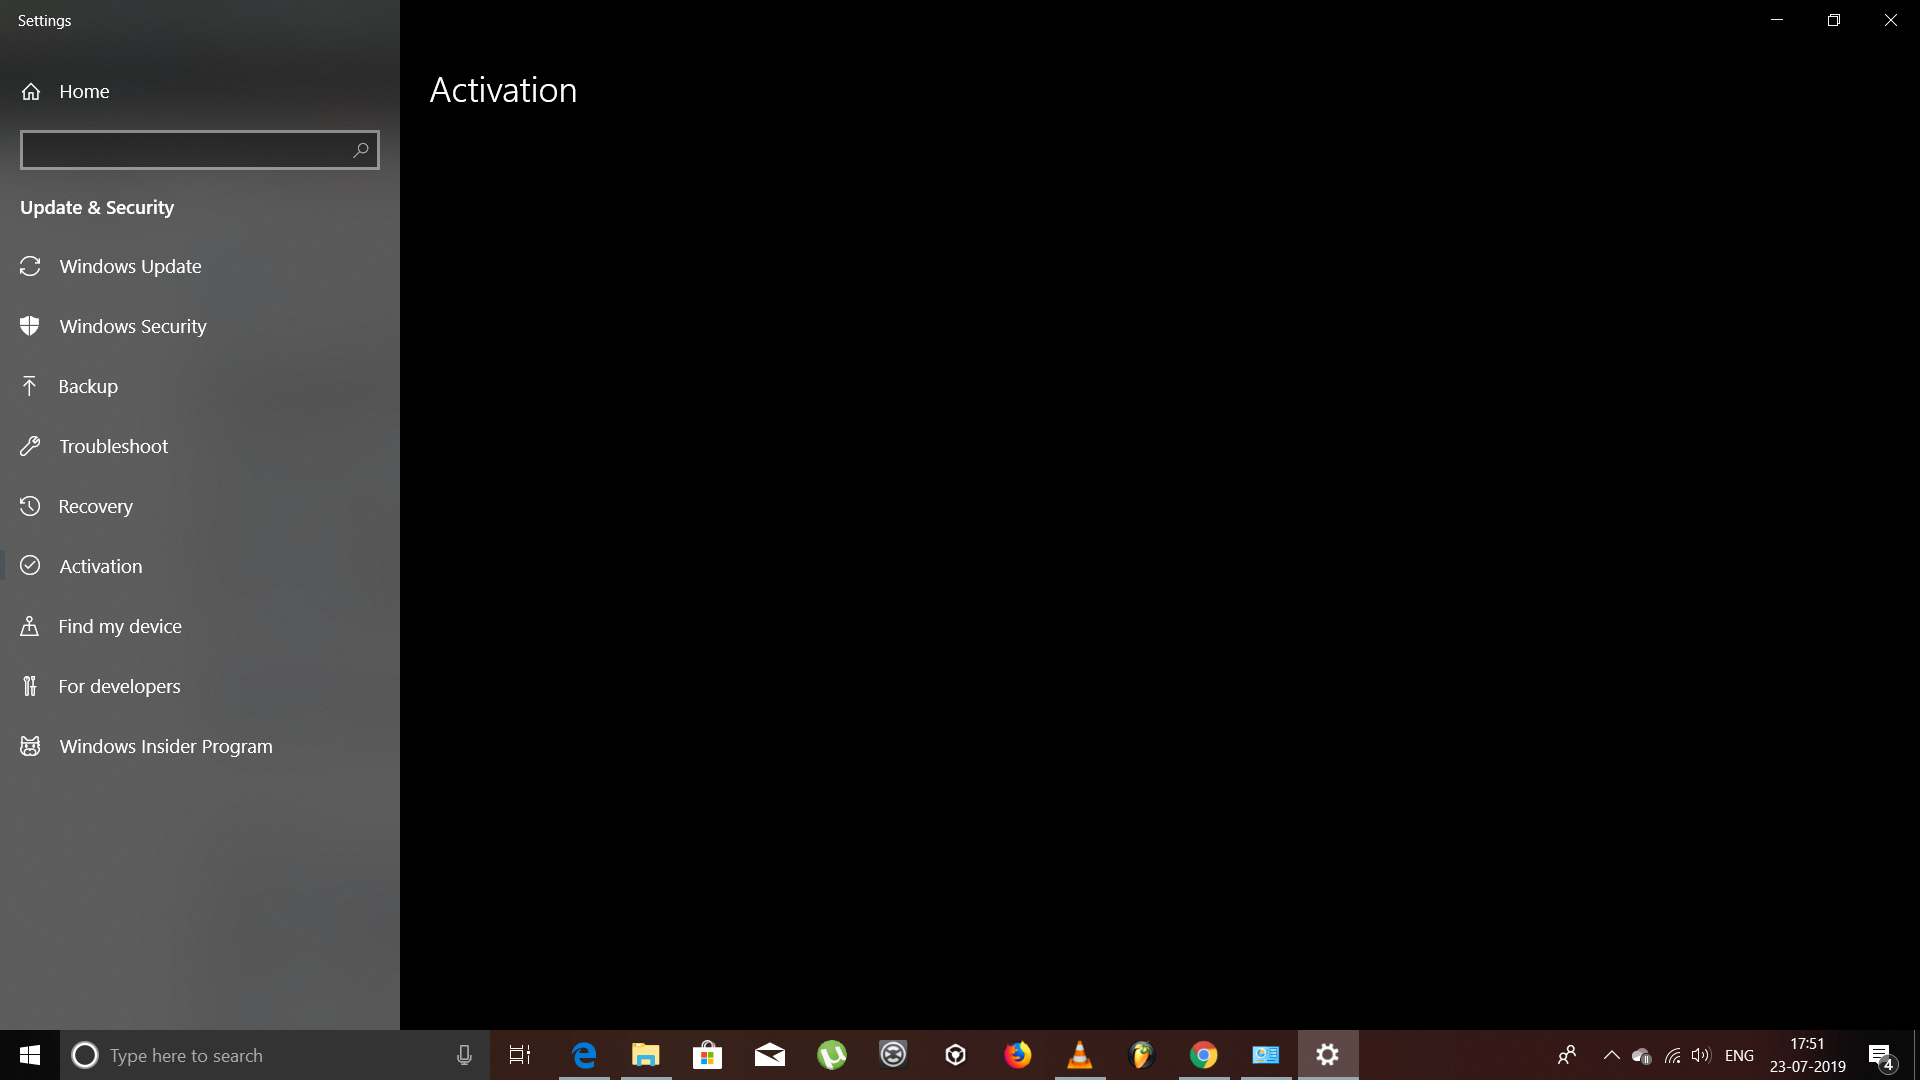 Windows activation screen blank bae95eac-0362-4a9f-8a17-daf763e01fe0?upload=true.png